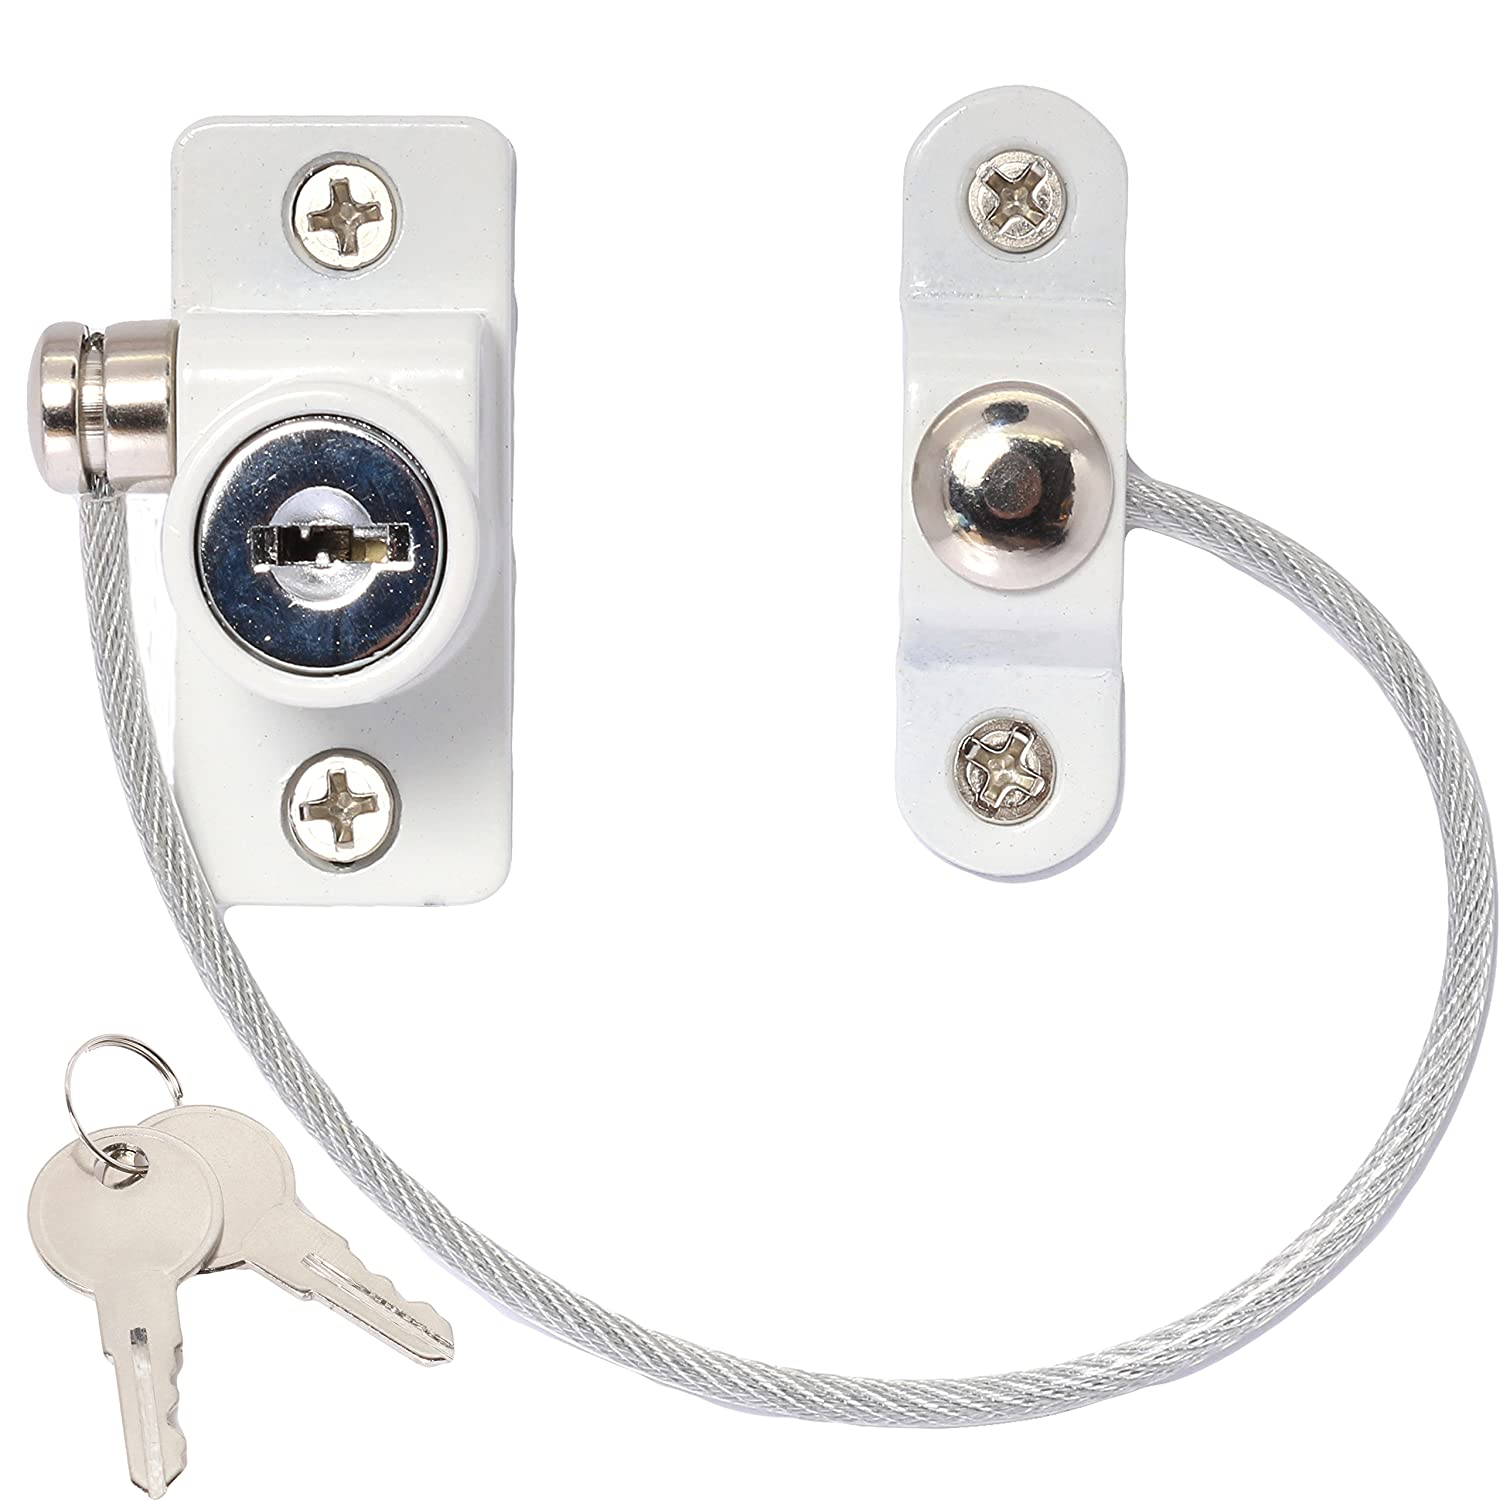 2 x Window Restrictor Security Cable Child & Baby Safety Locks - Keyed Alike (White) White Hinge